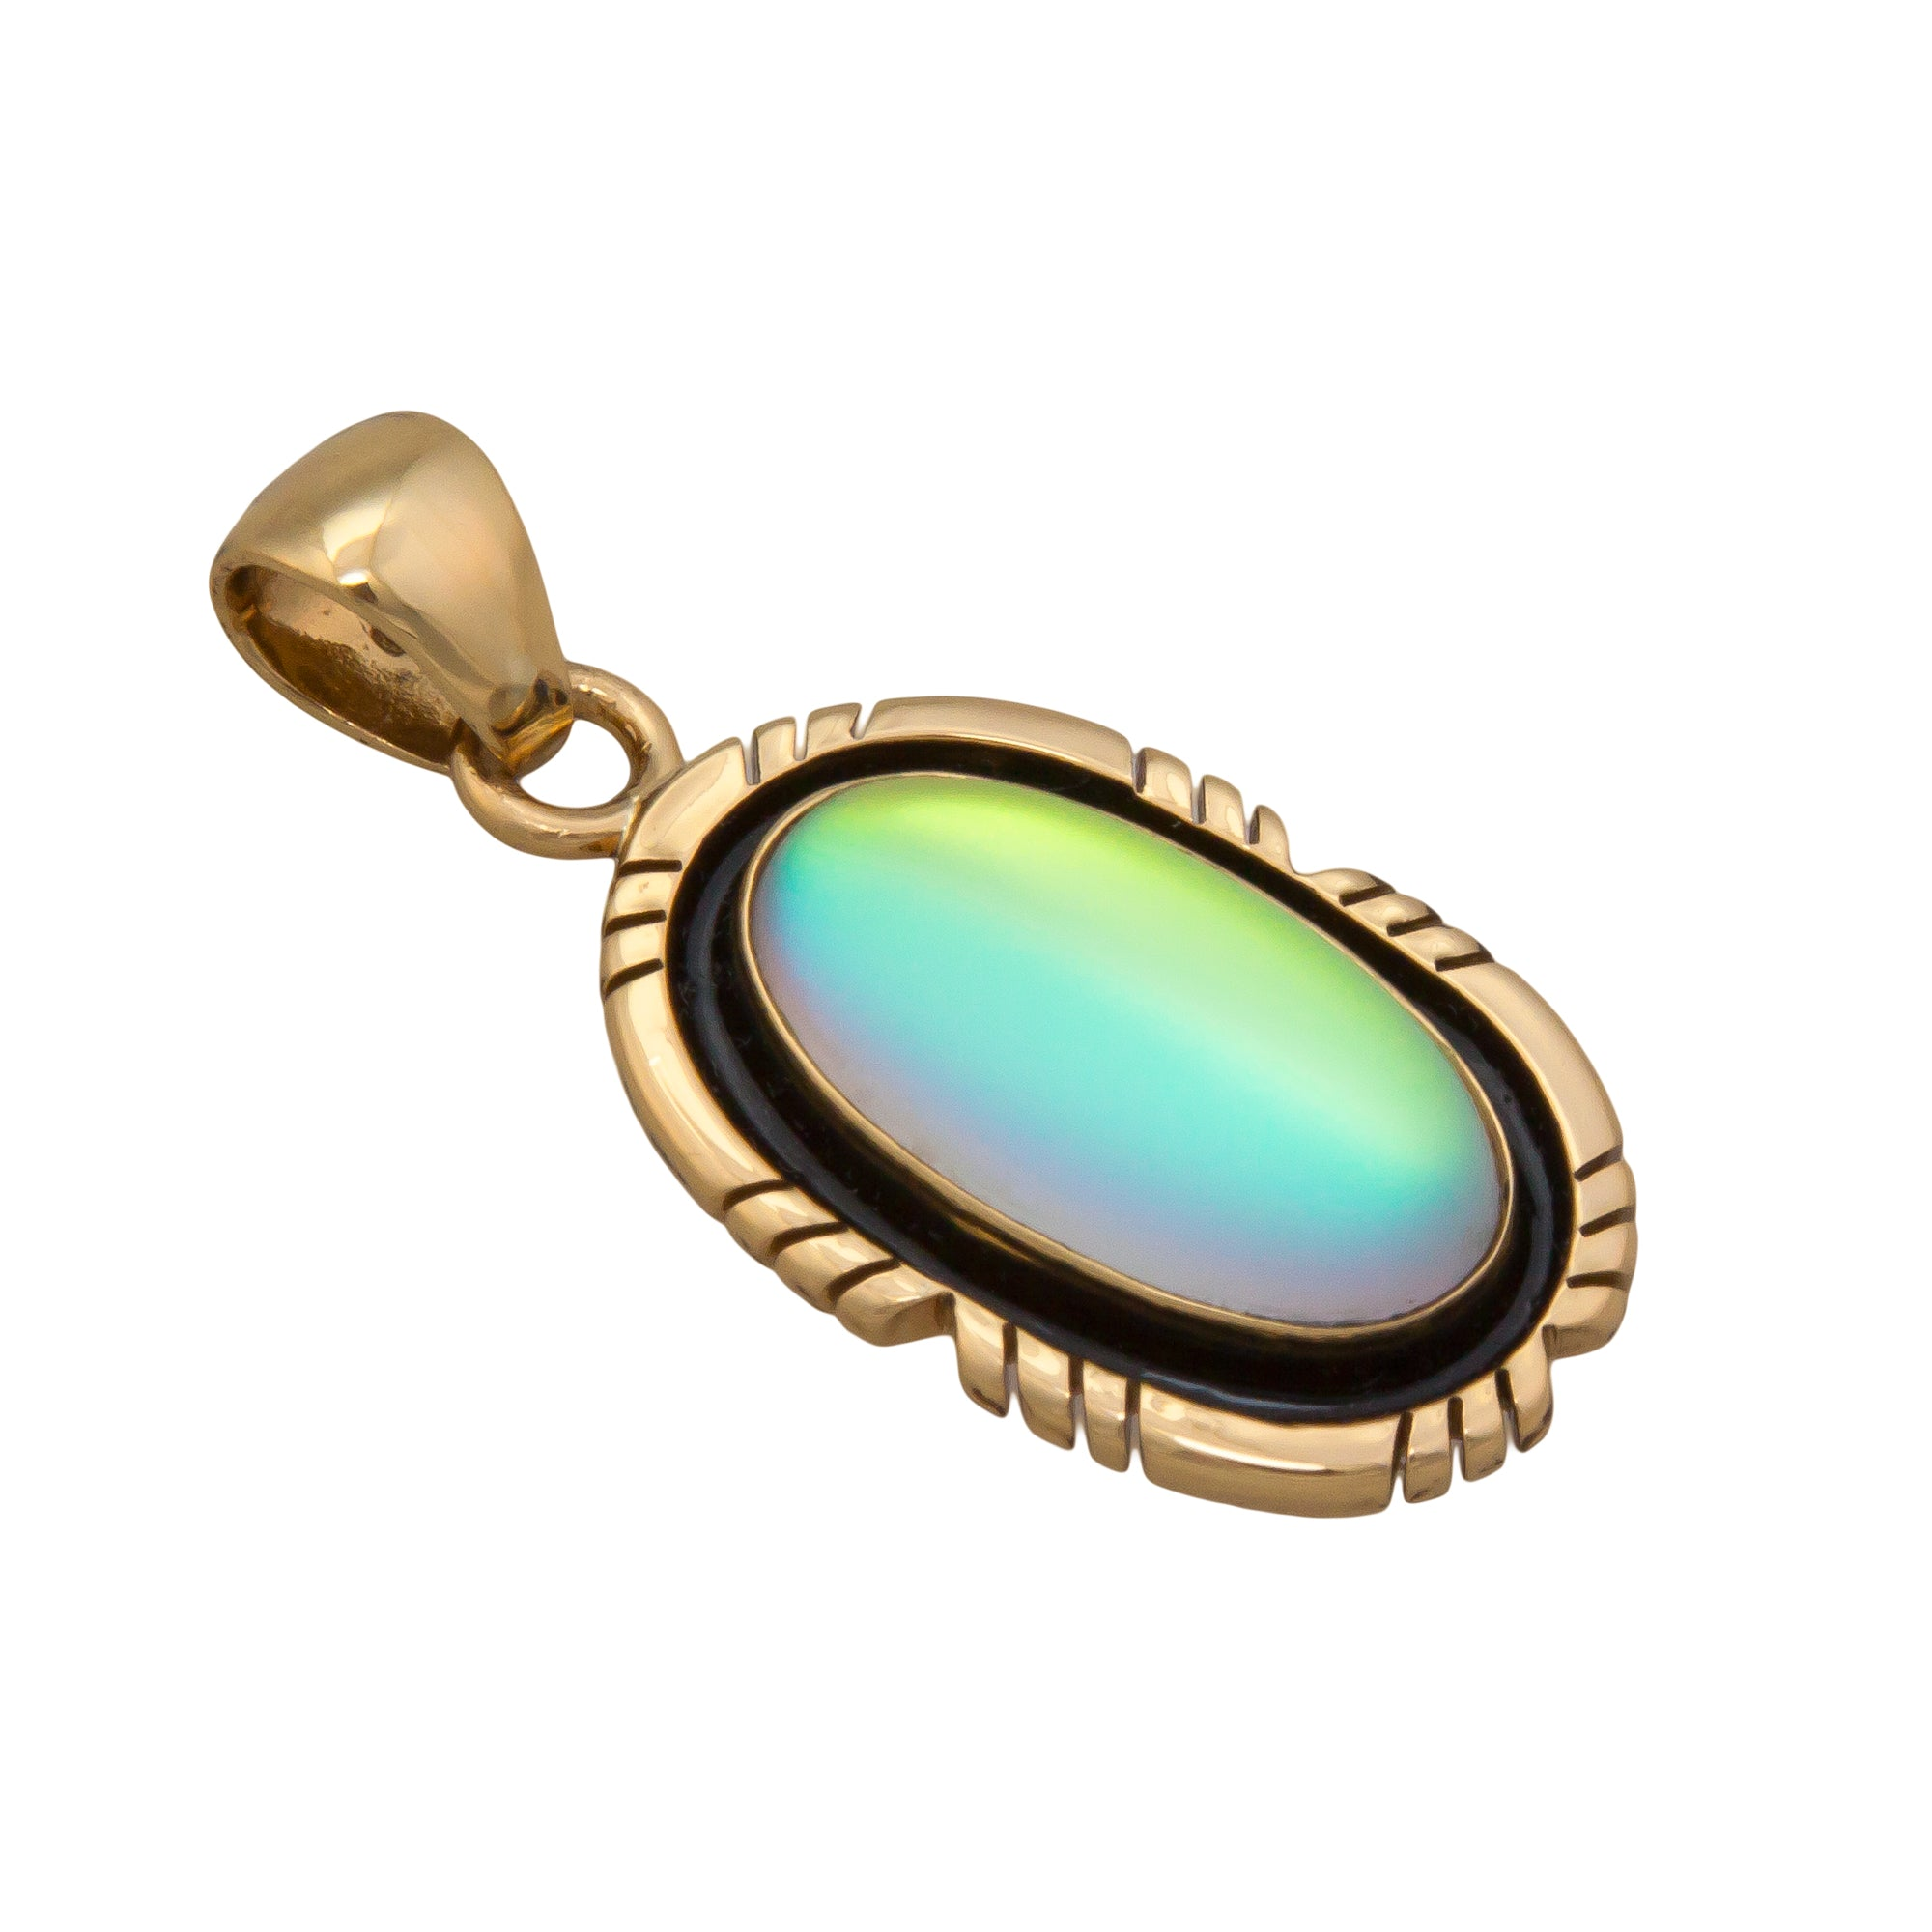 Alchemia Oval Luminite Pendant with Detailed Edge | Charles Albert Jewelry